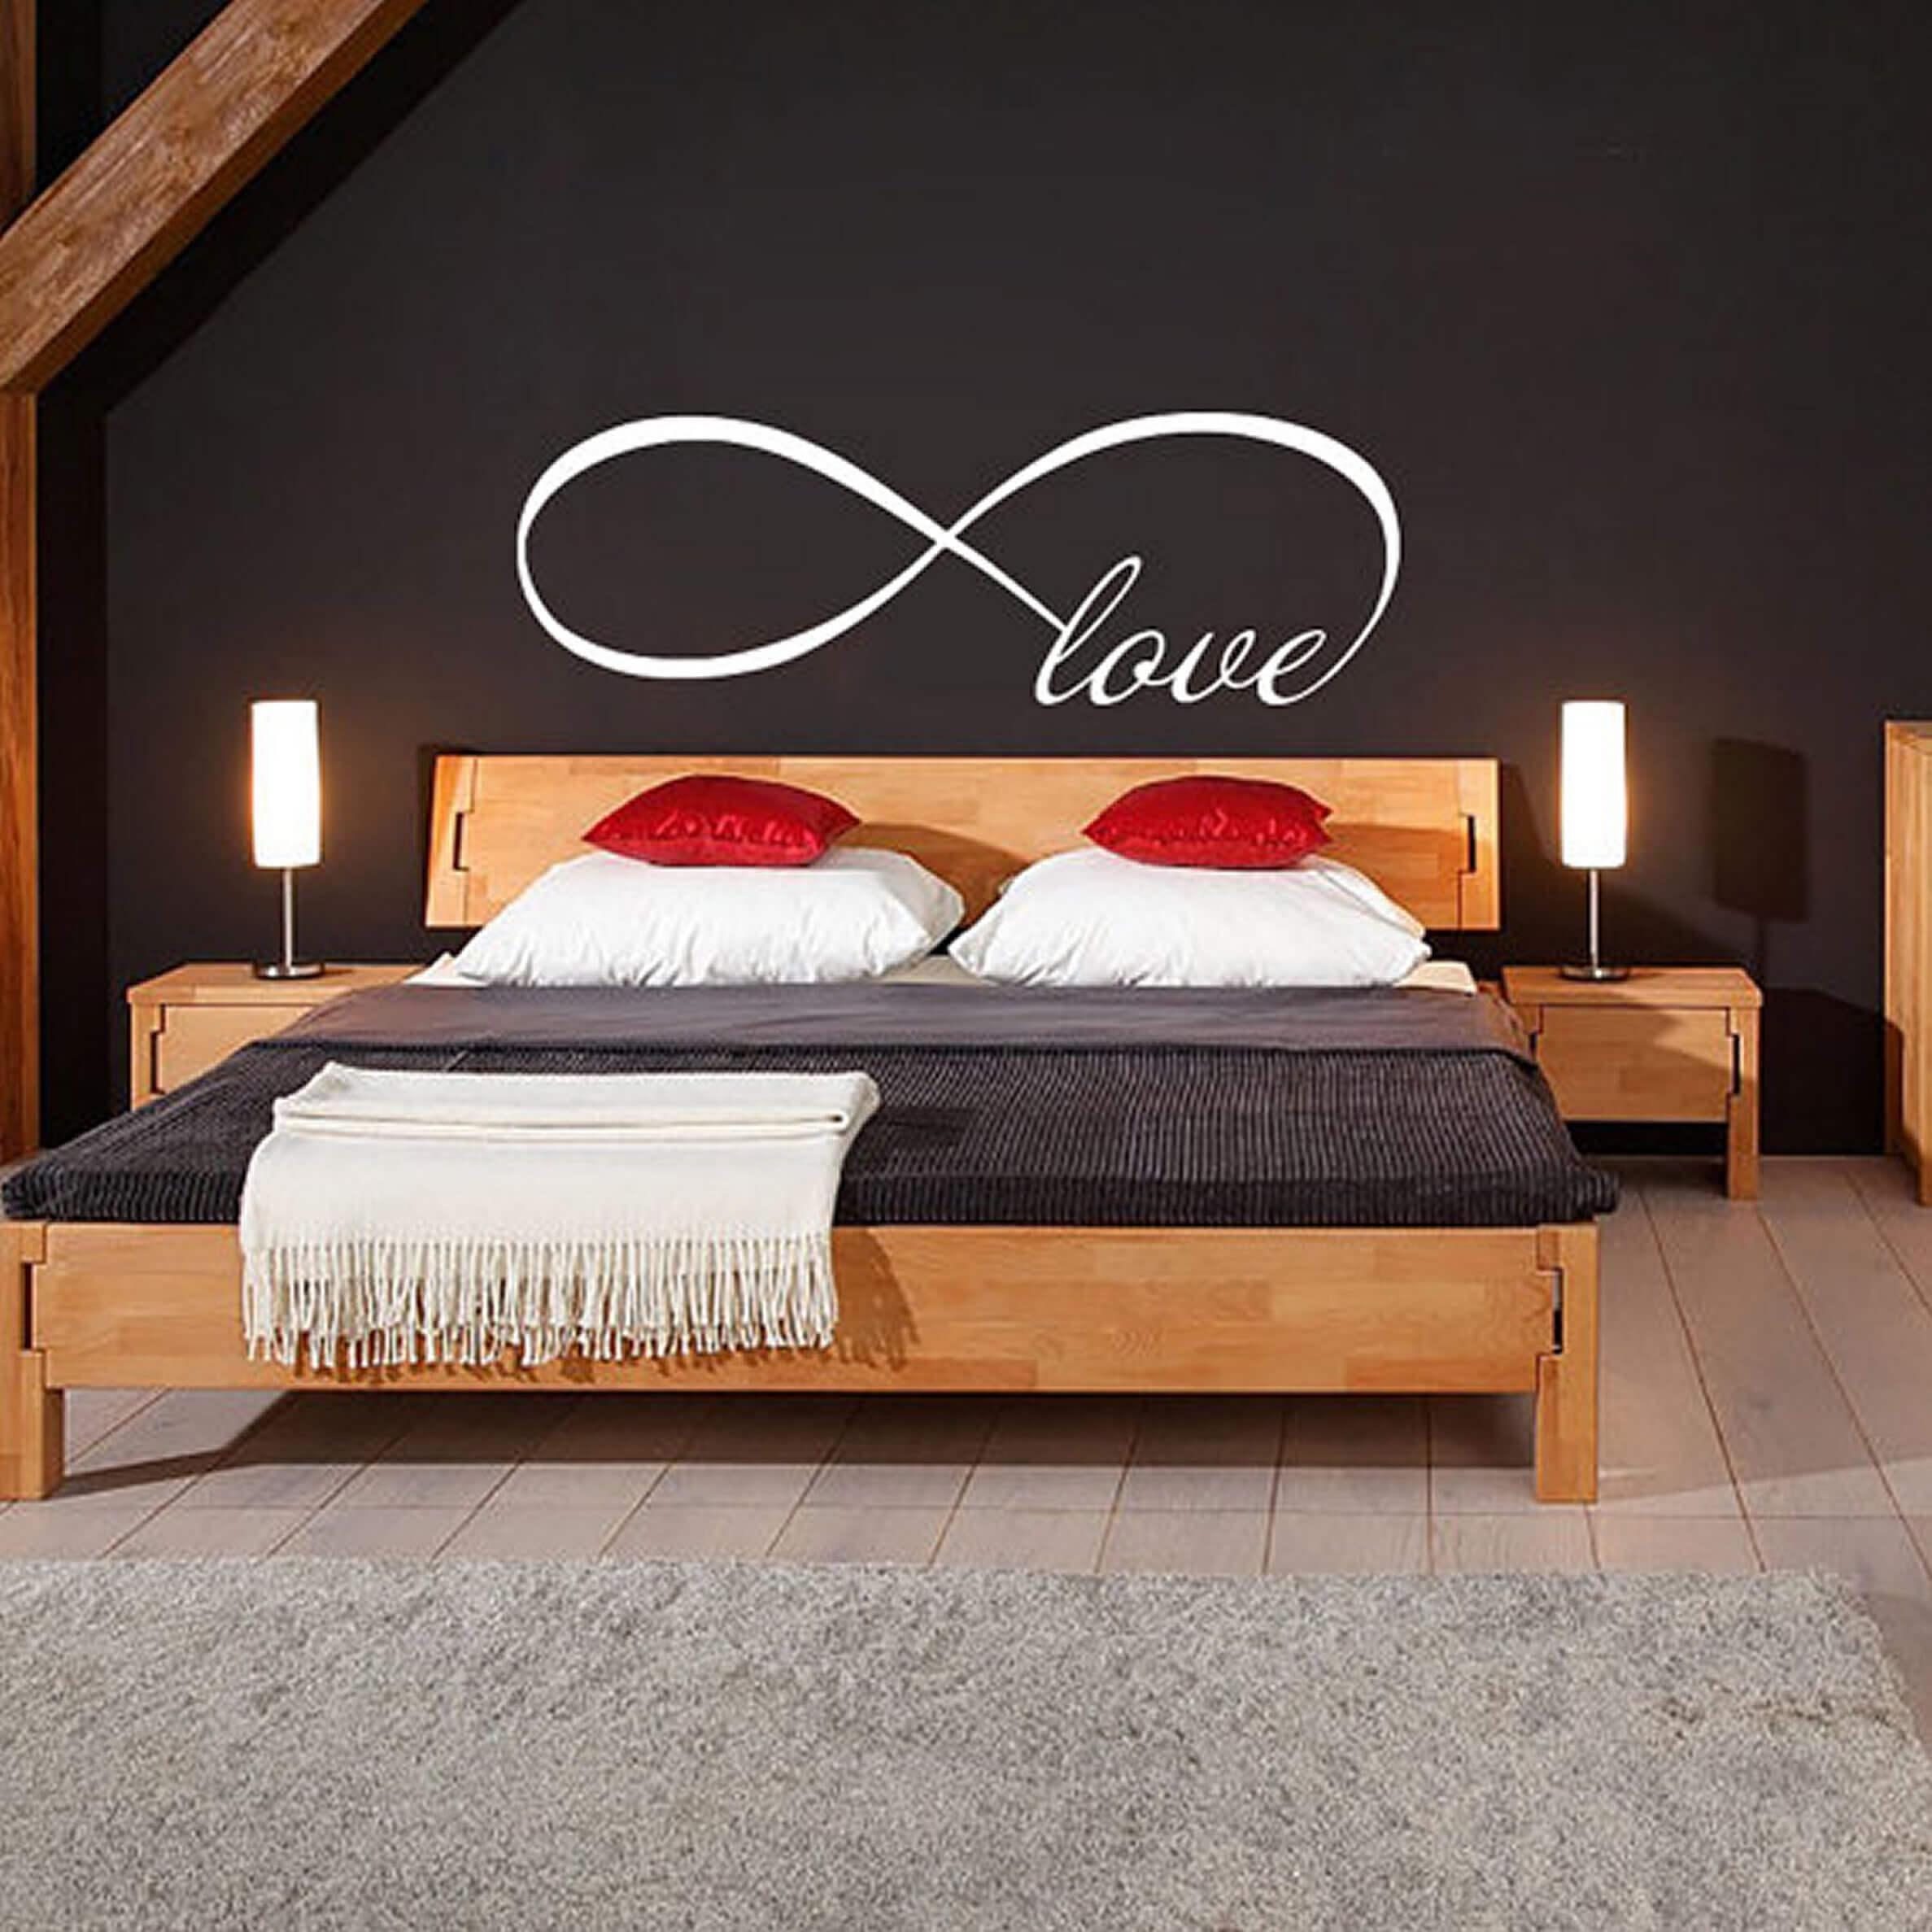 Wall Decals : Beautiful Wall Decals Love 102 Wall Stickers Love Inside Kohls Wall Decals (Image 15 of 20)